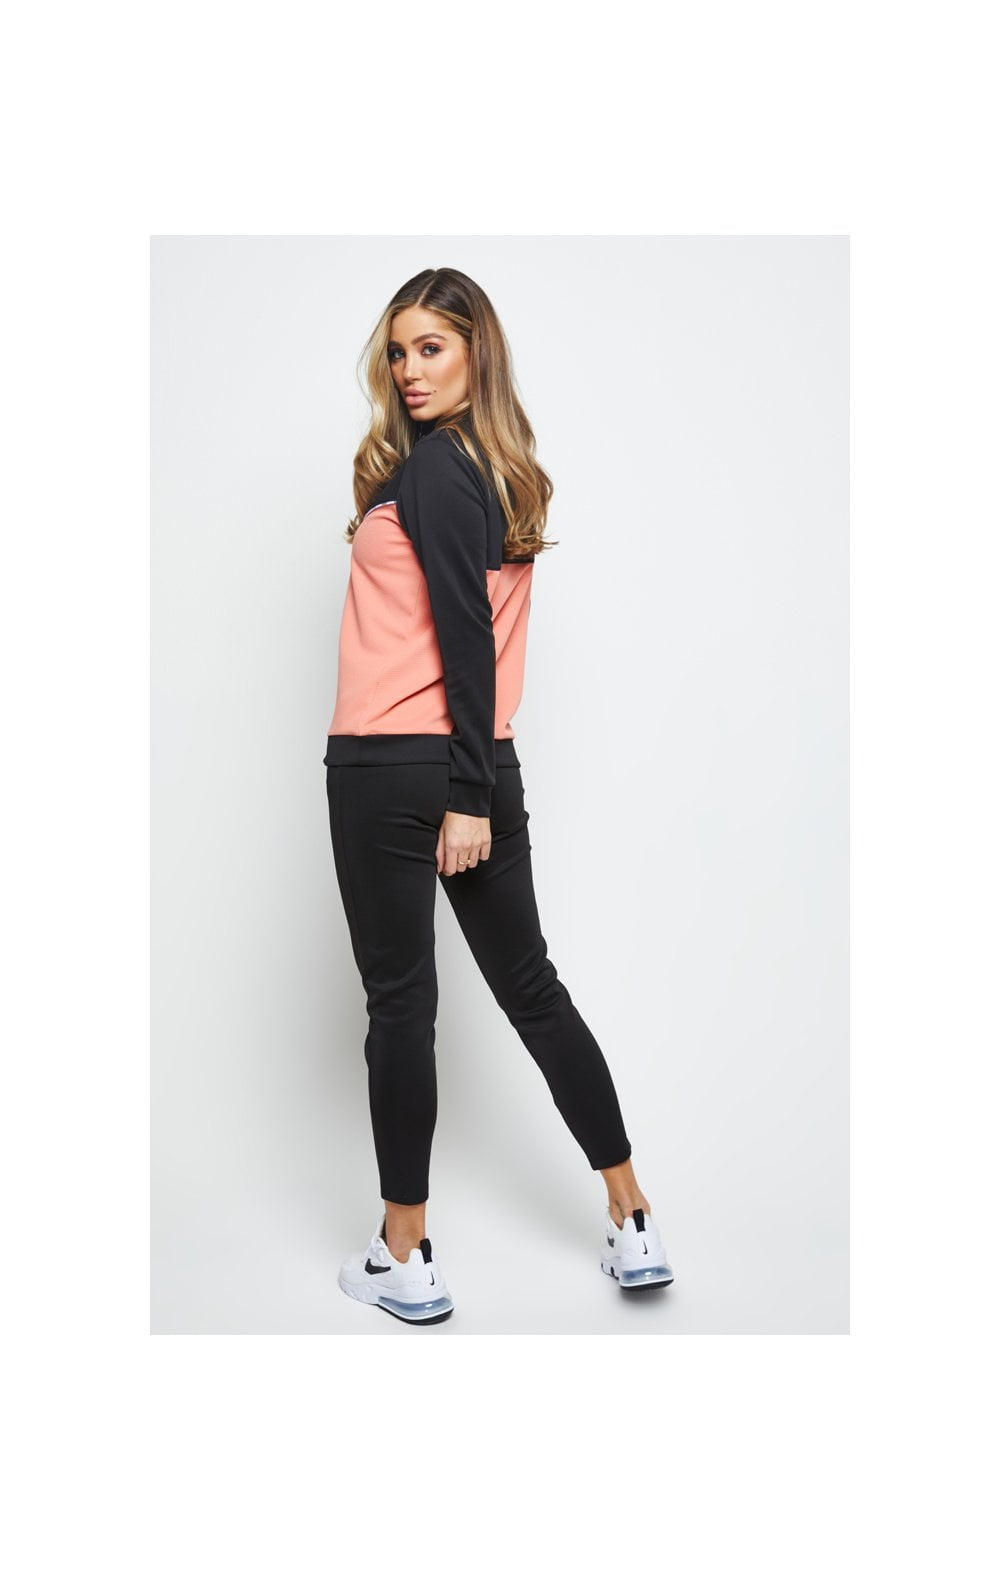 SikSilk Duality Quarter Zip Track Top - Black & Coral (5)